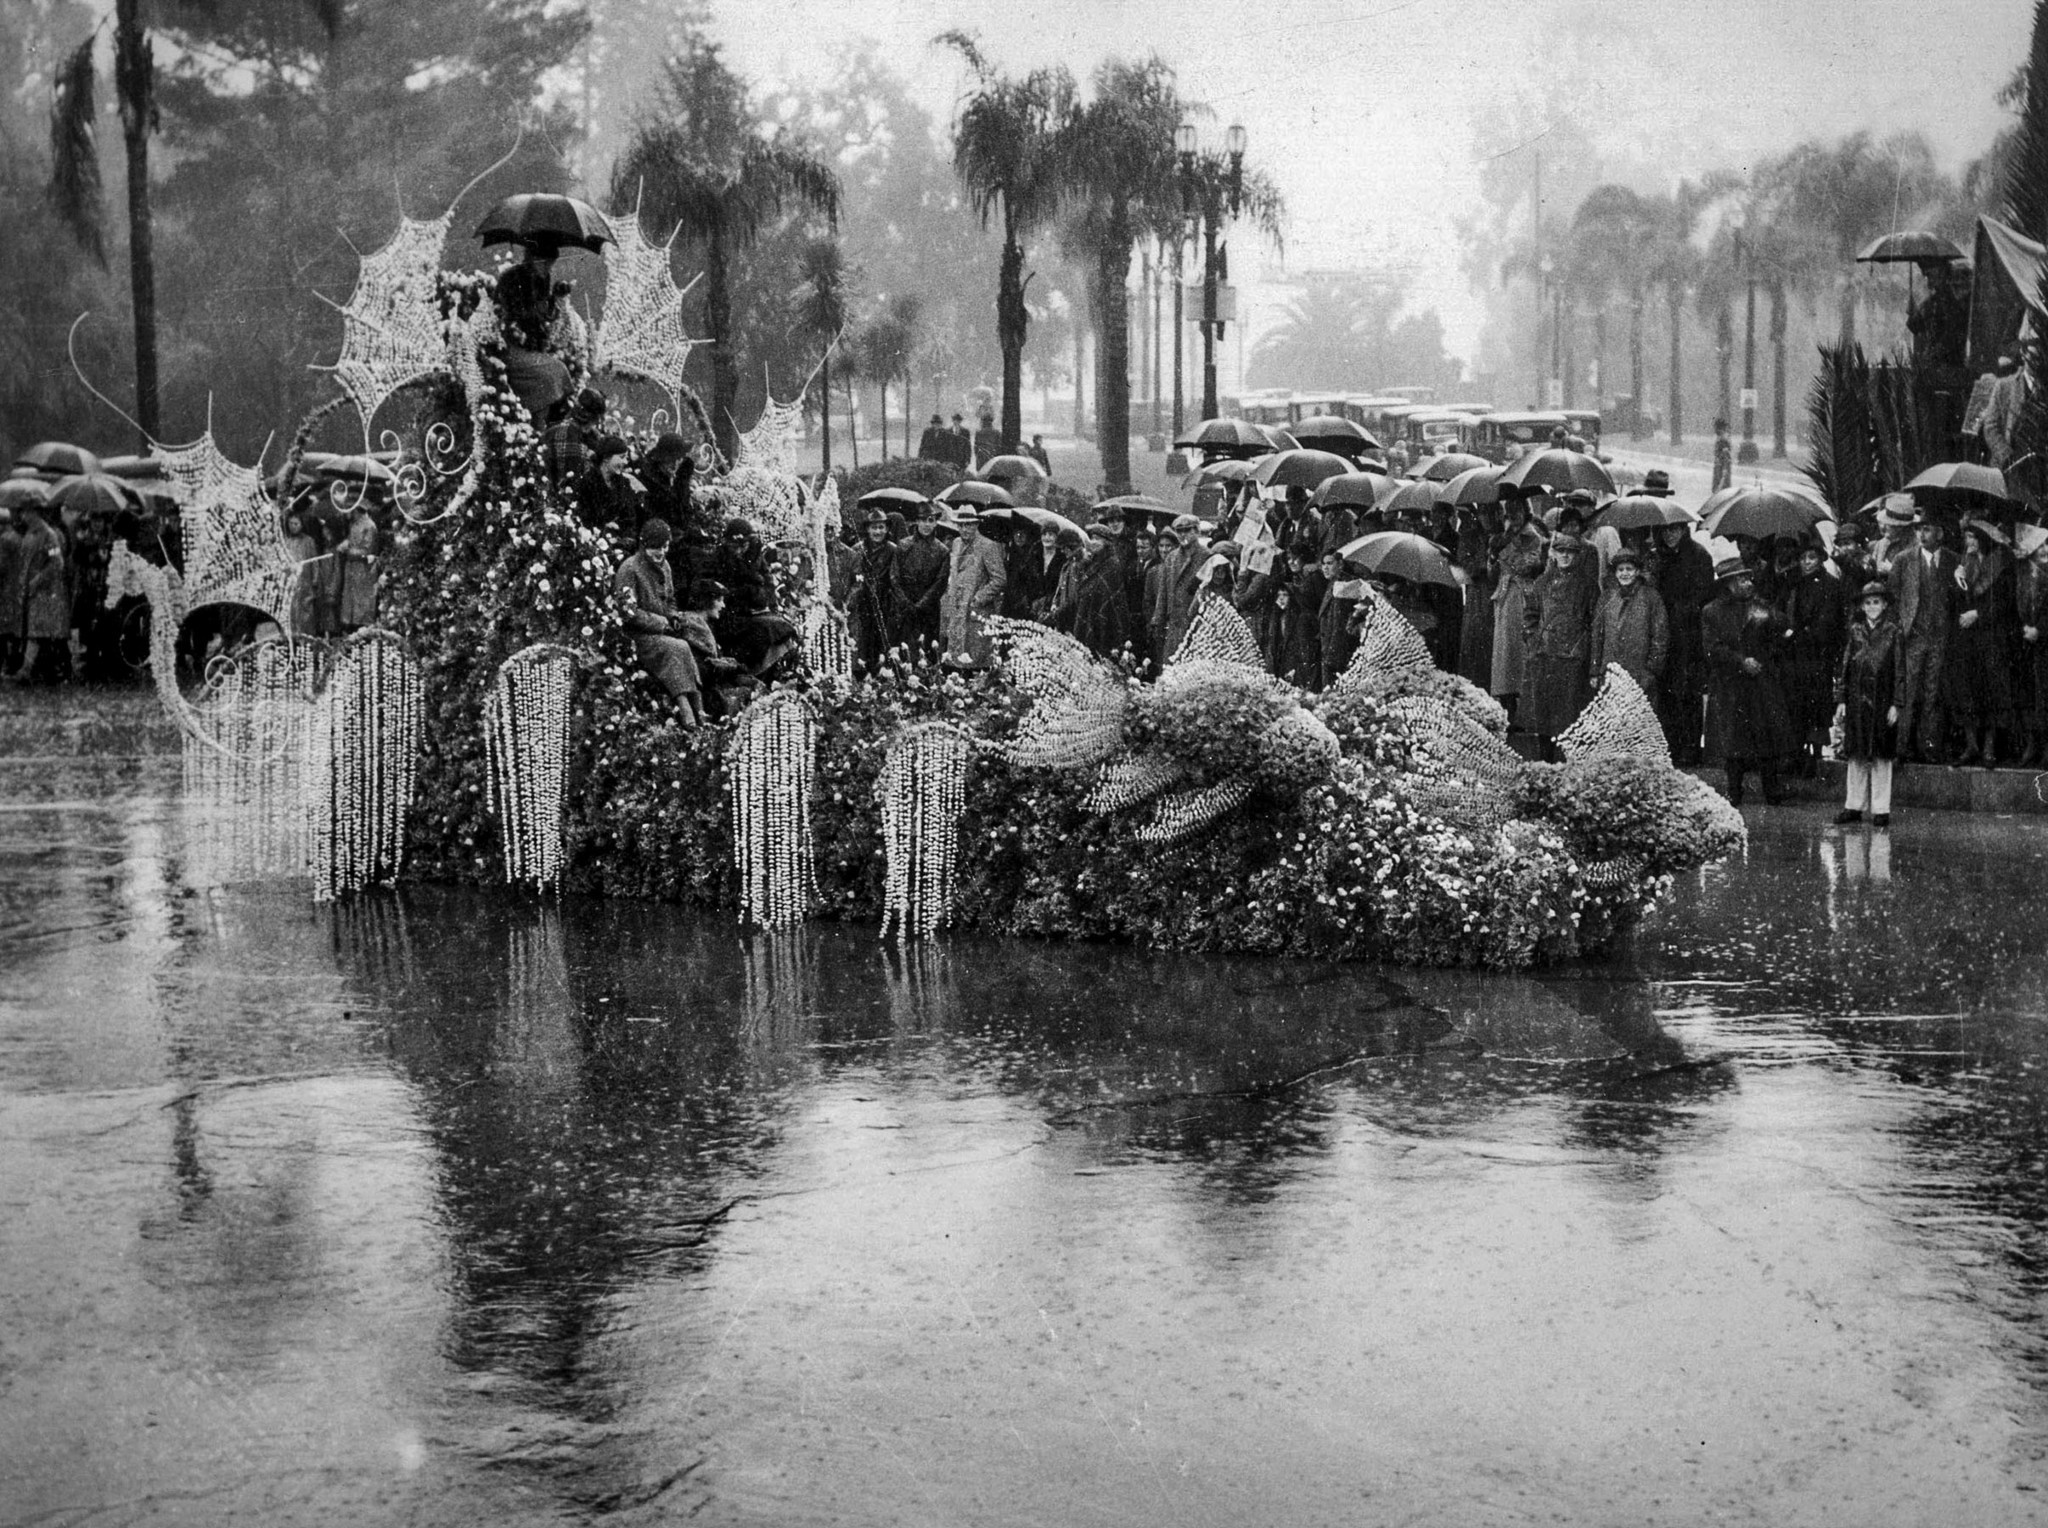 Jan. 1, 1934: Tournament of Roses queen Treva Scott, top of float with umbrella, and her court durin